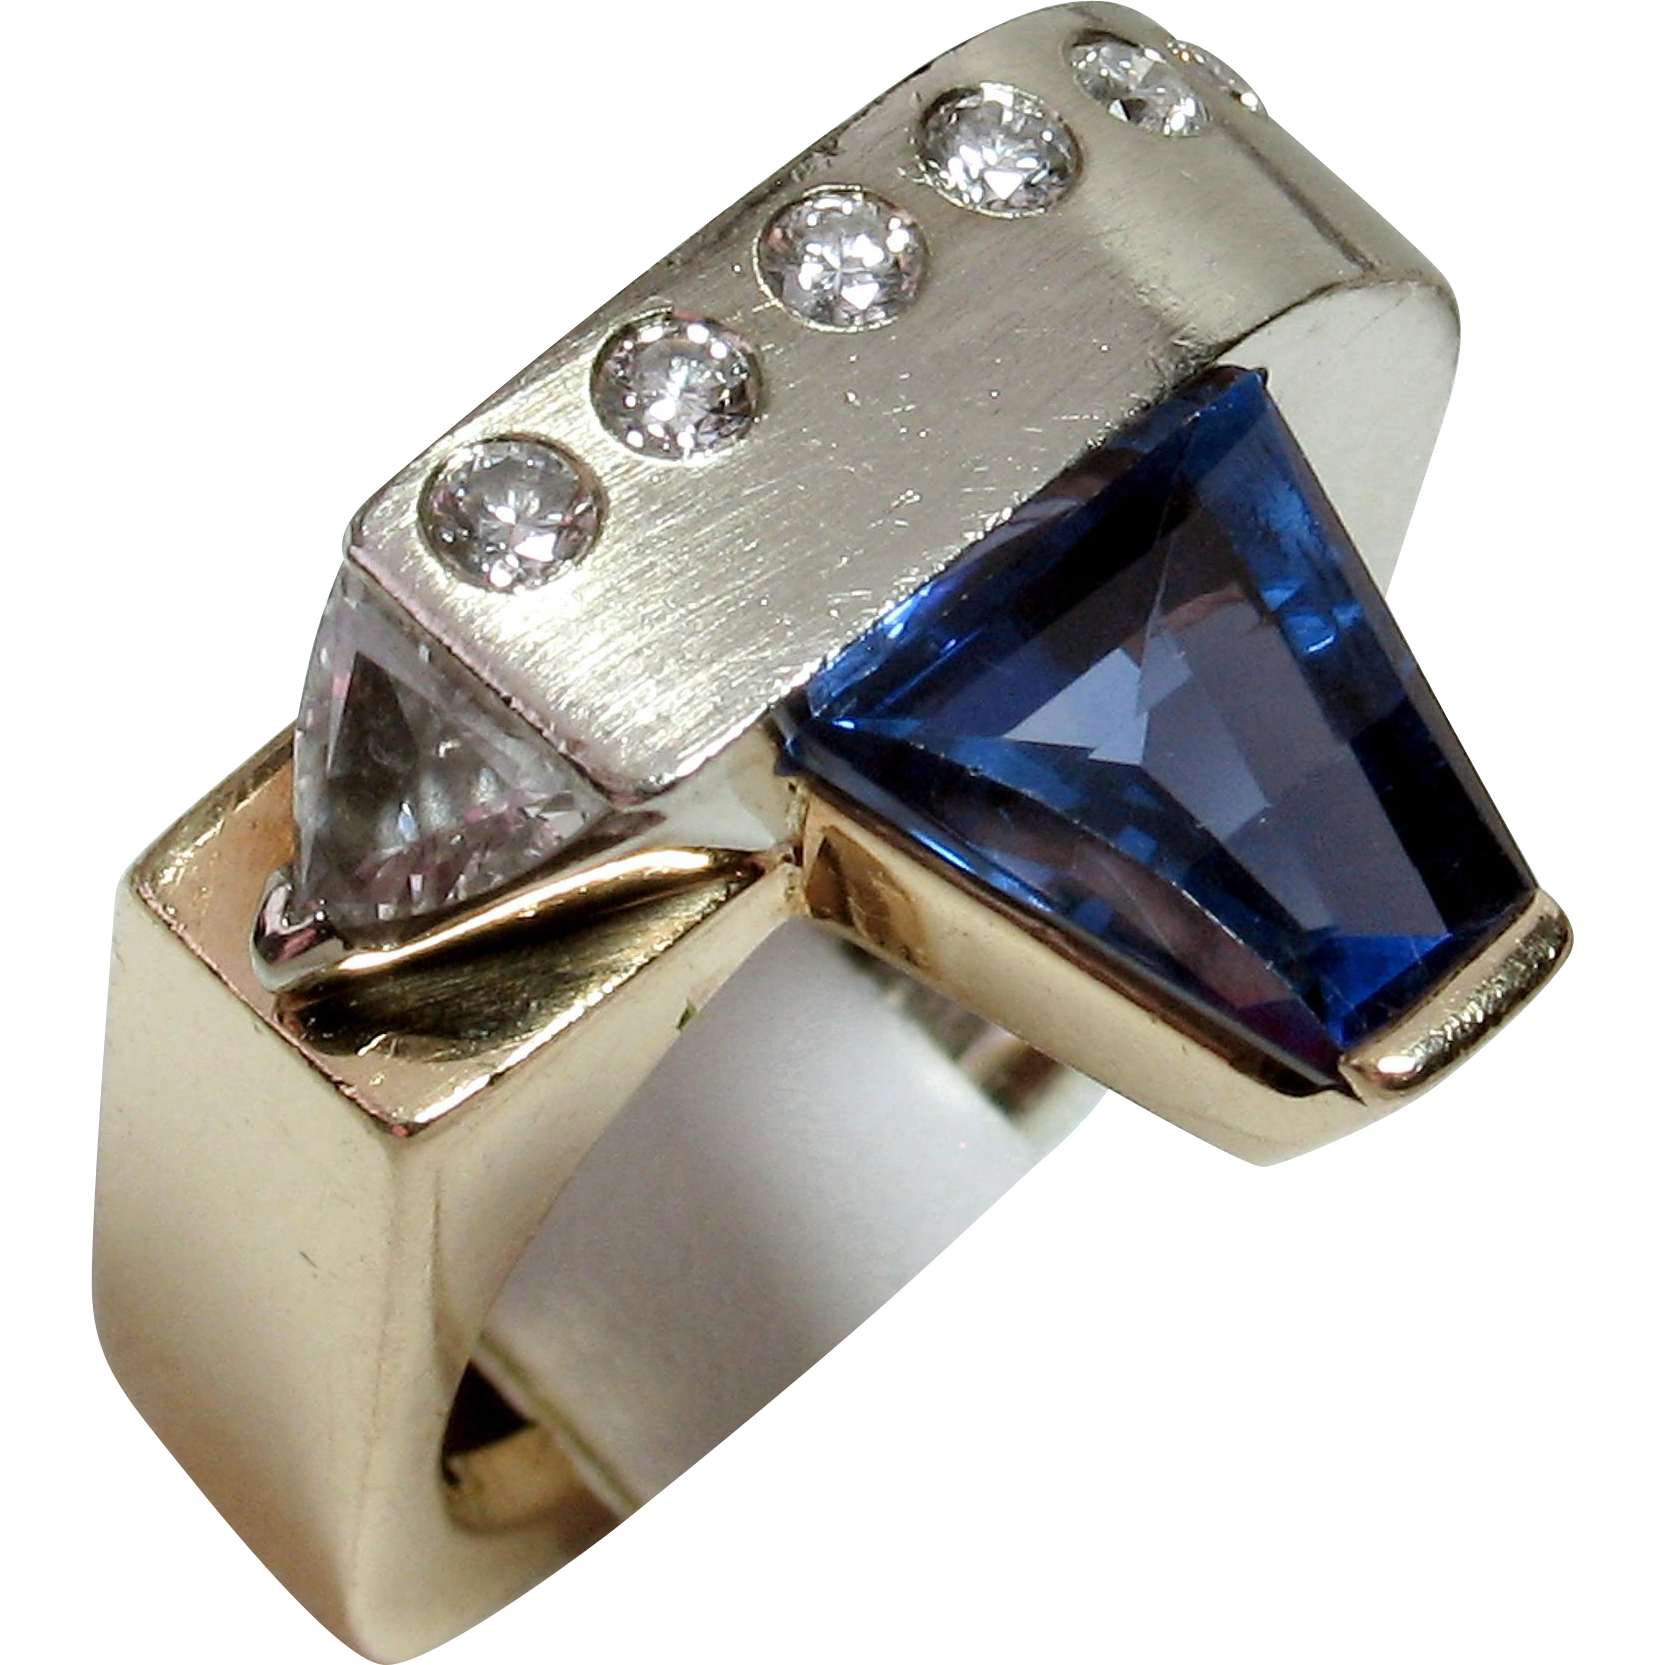 CHRISTMAS CLEAROUT SALE! Save 55%! Vintage One-of-a-Kind Designer 14kt Tanzanite & Diamond Ring